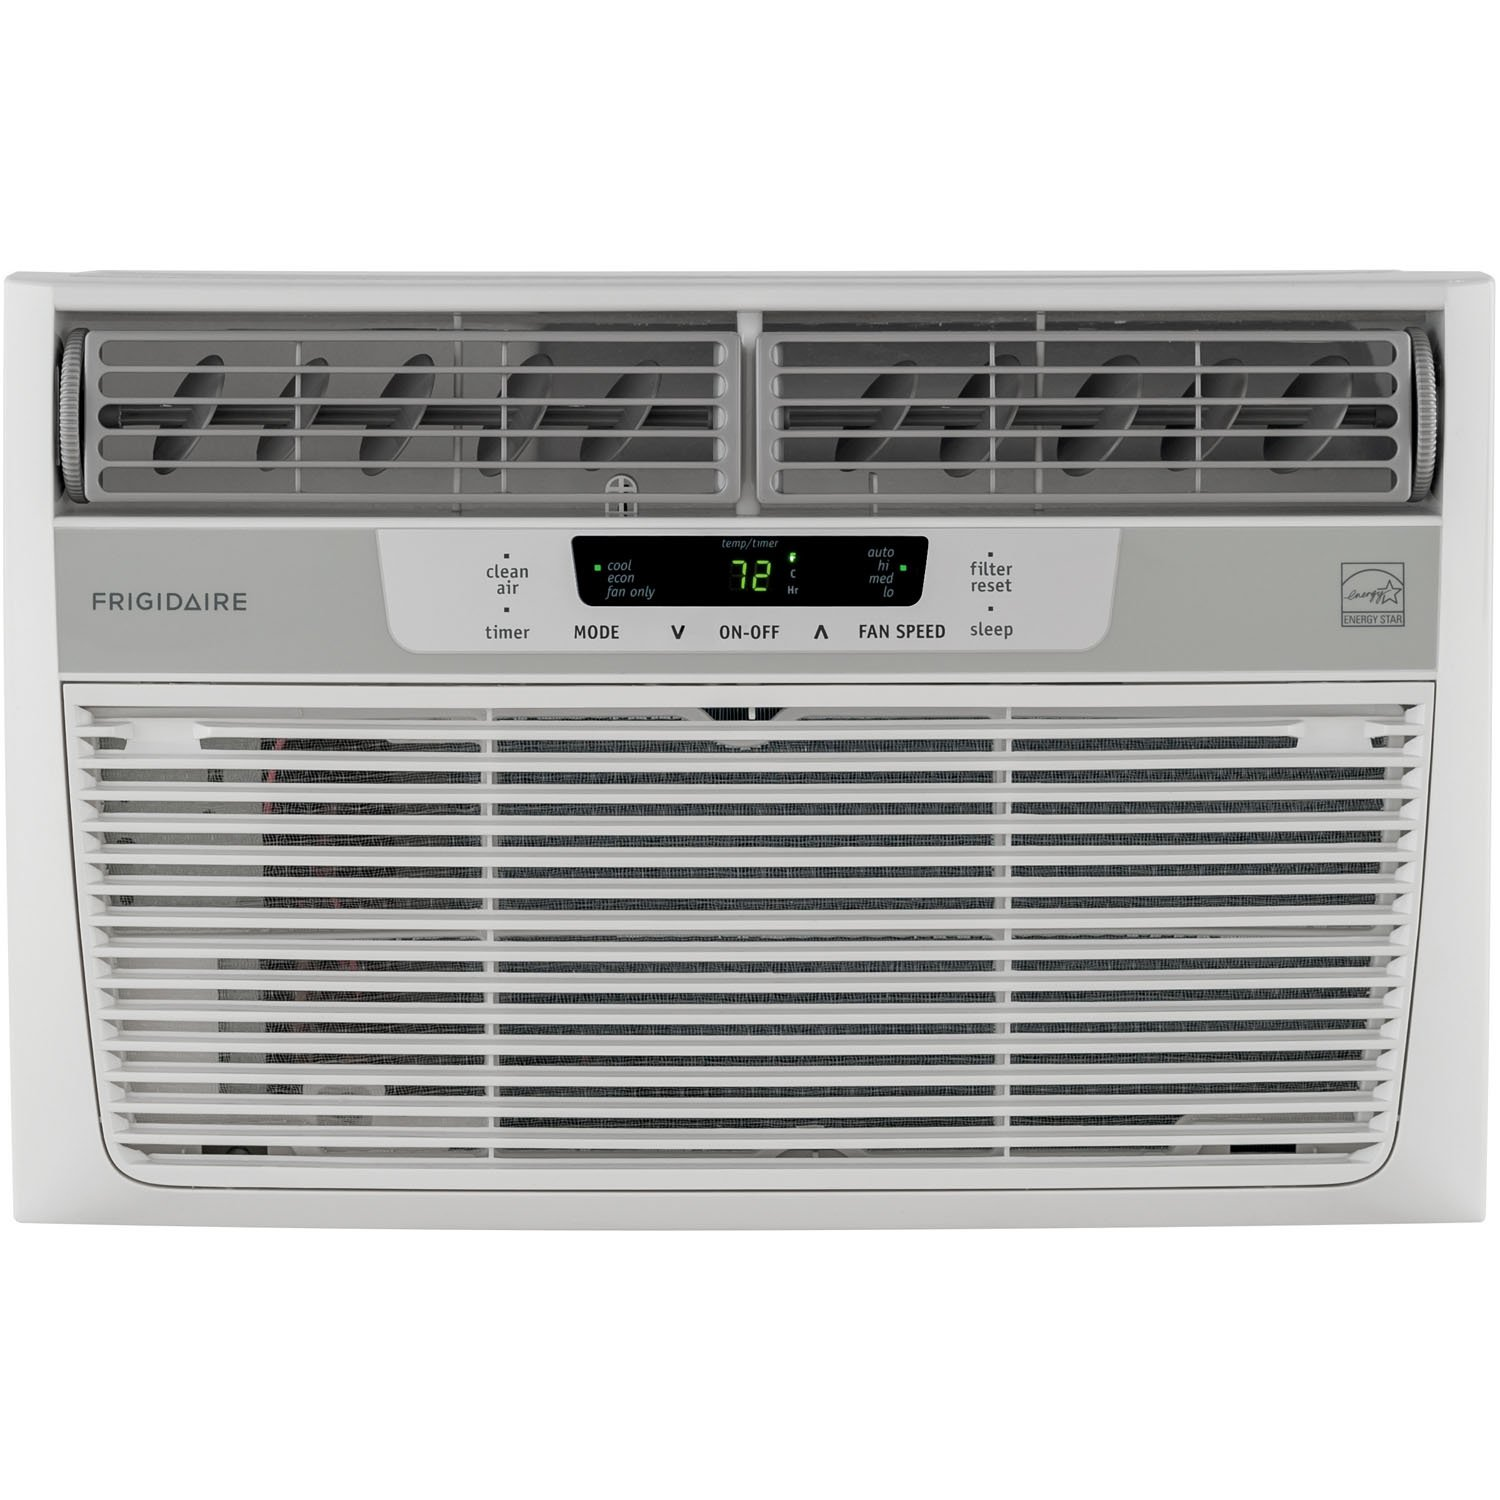 FFRE0633Q1 6 000 BTU 115V Window Mounted Mini Compact Air Conditioner #4D6147